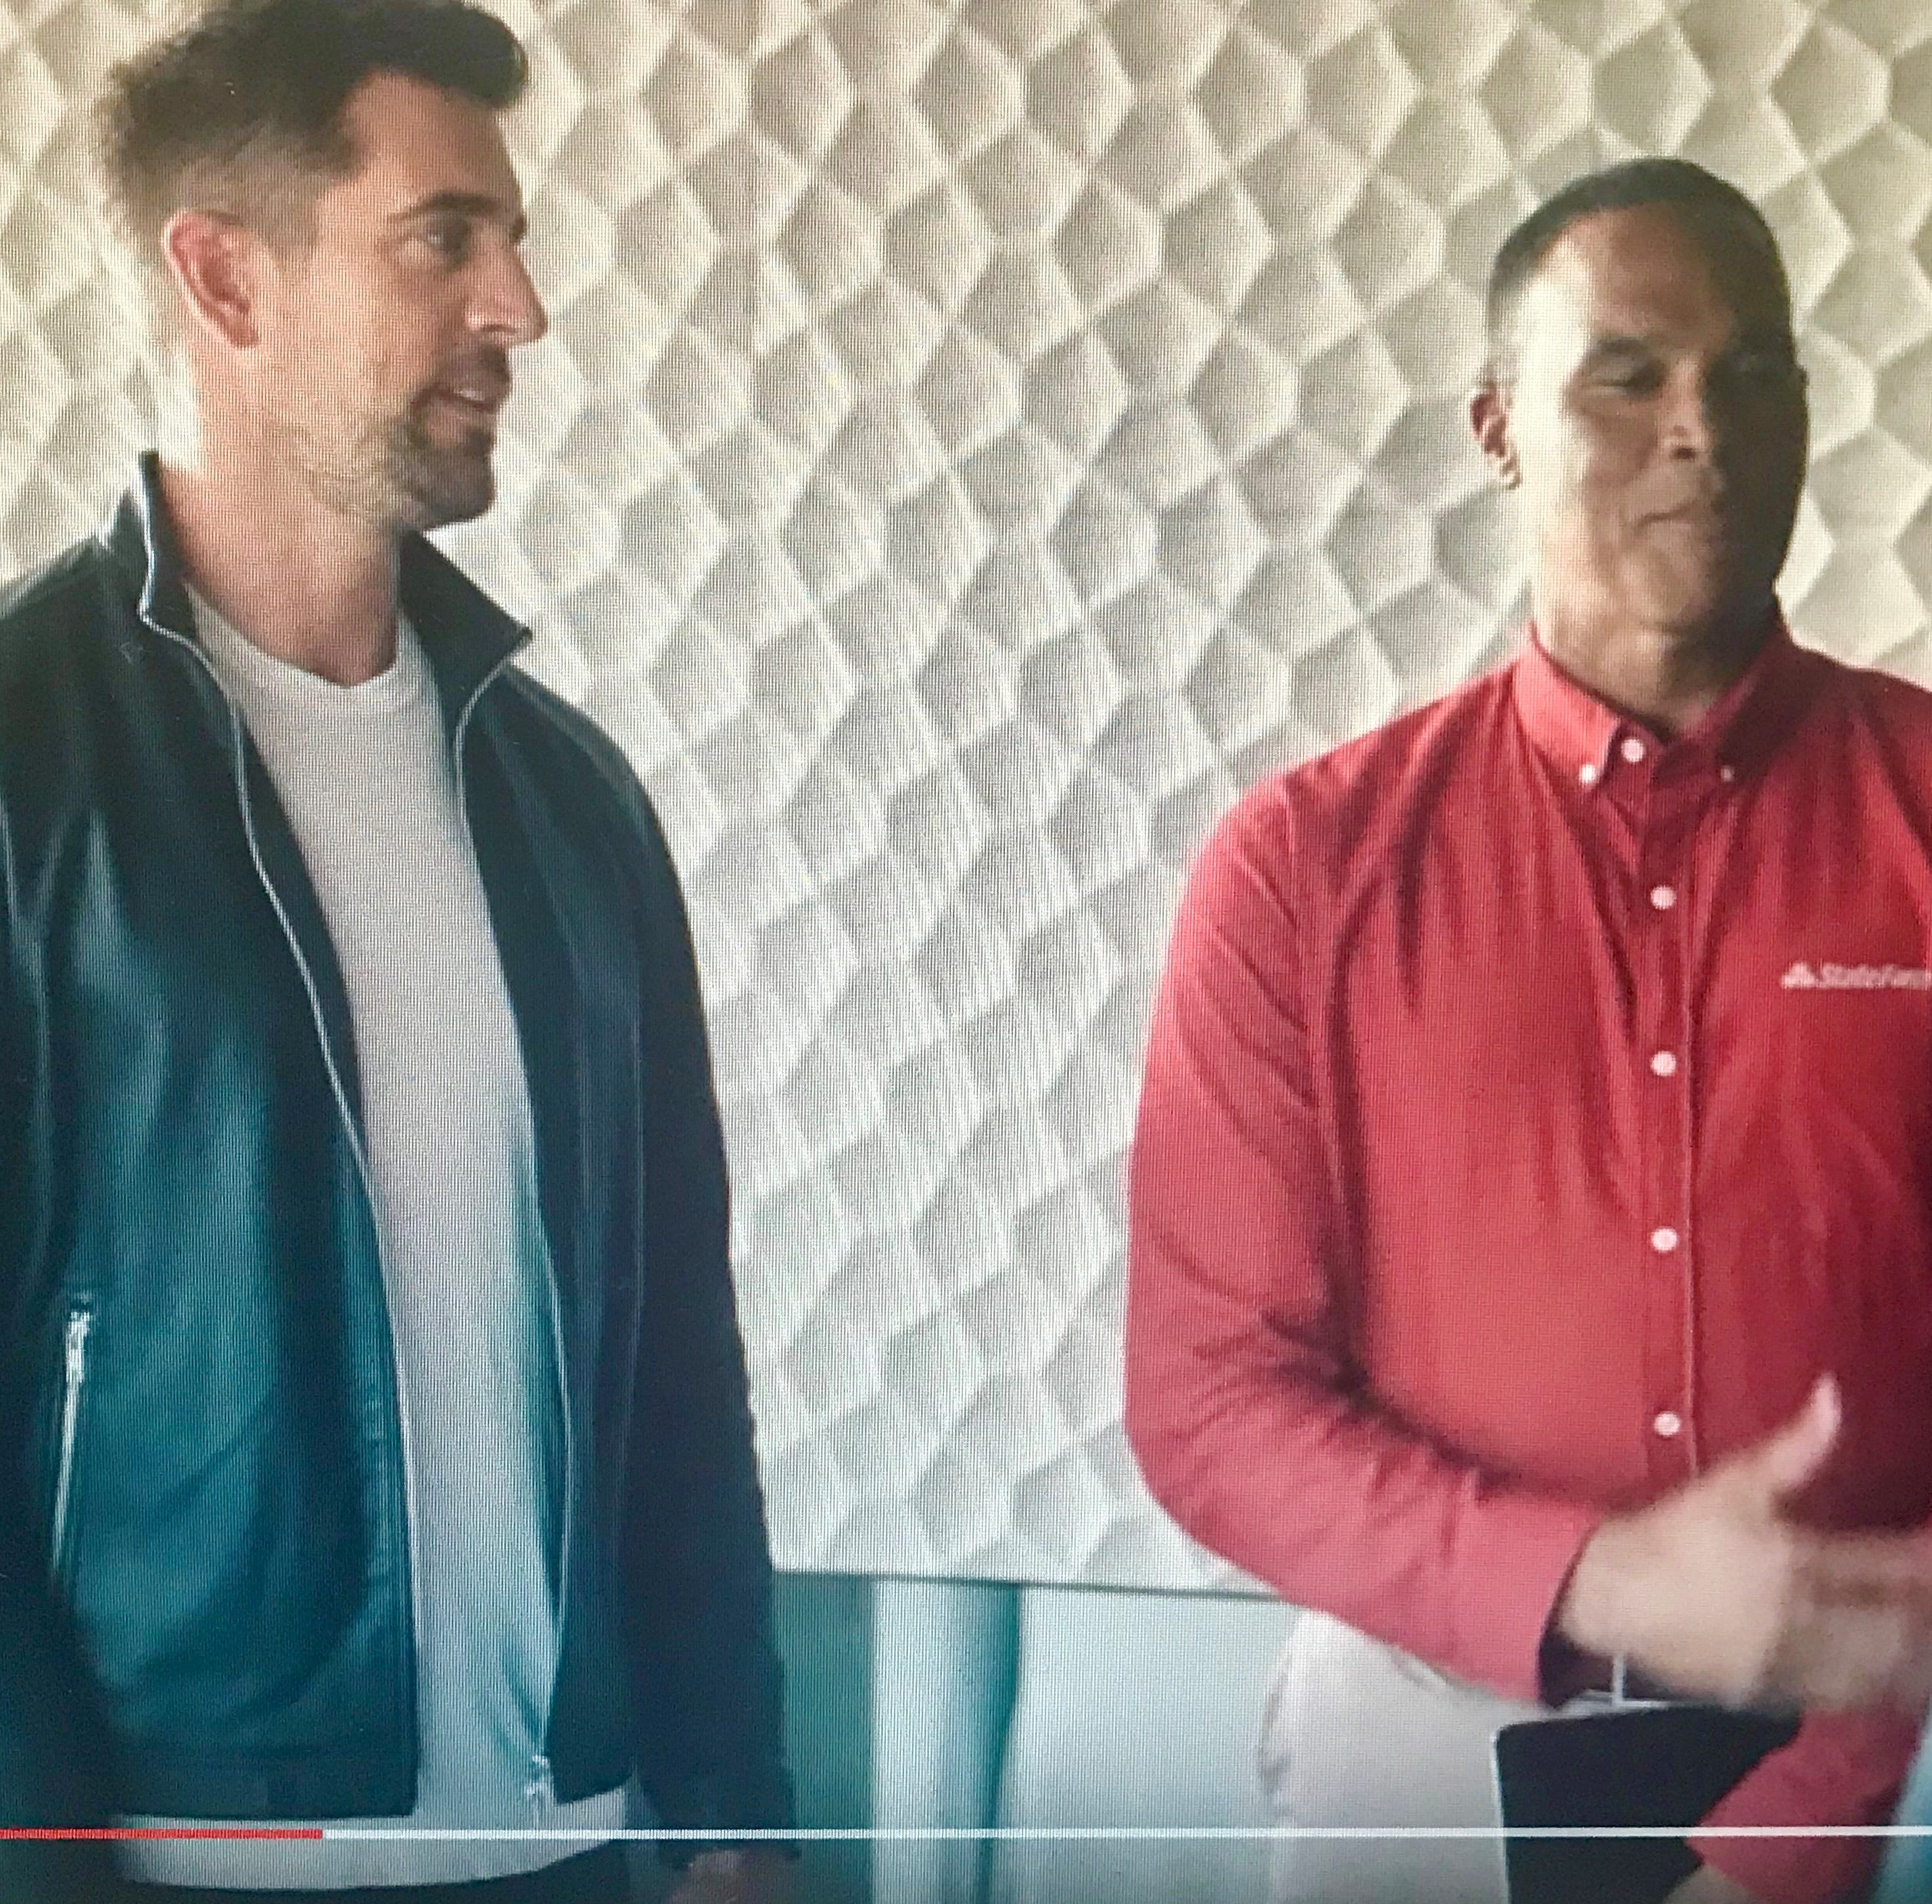 Aaron Rodgers' new State Farm ad is an ongoing, one-sided rivalry